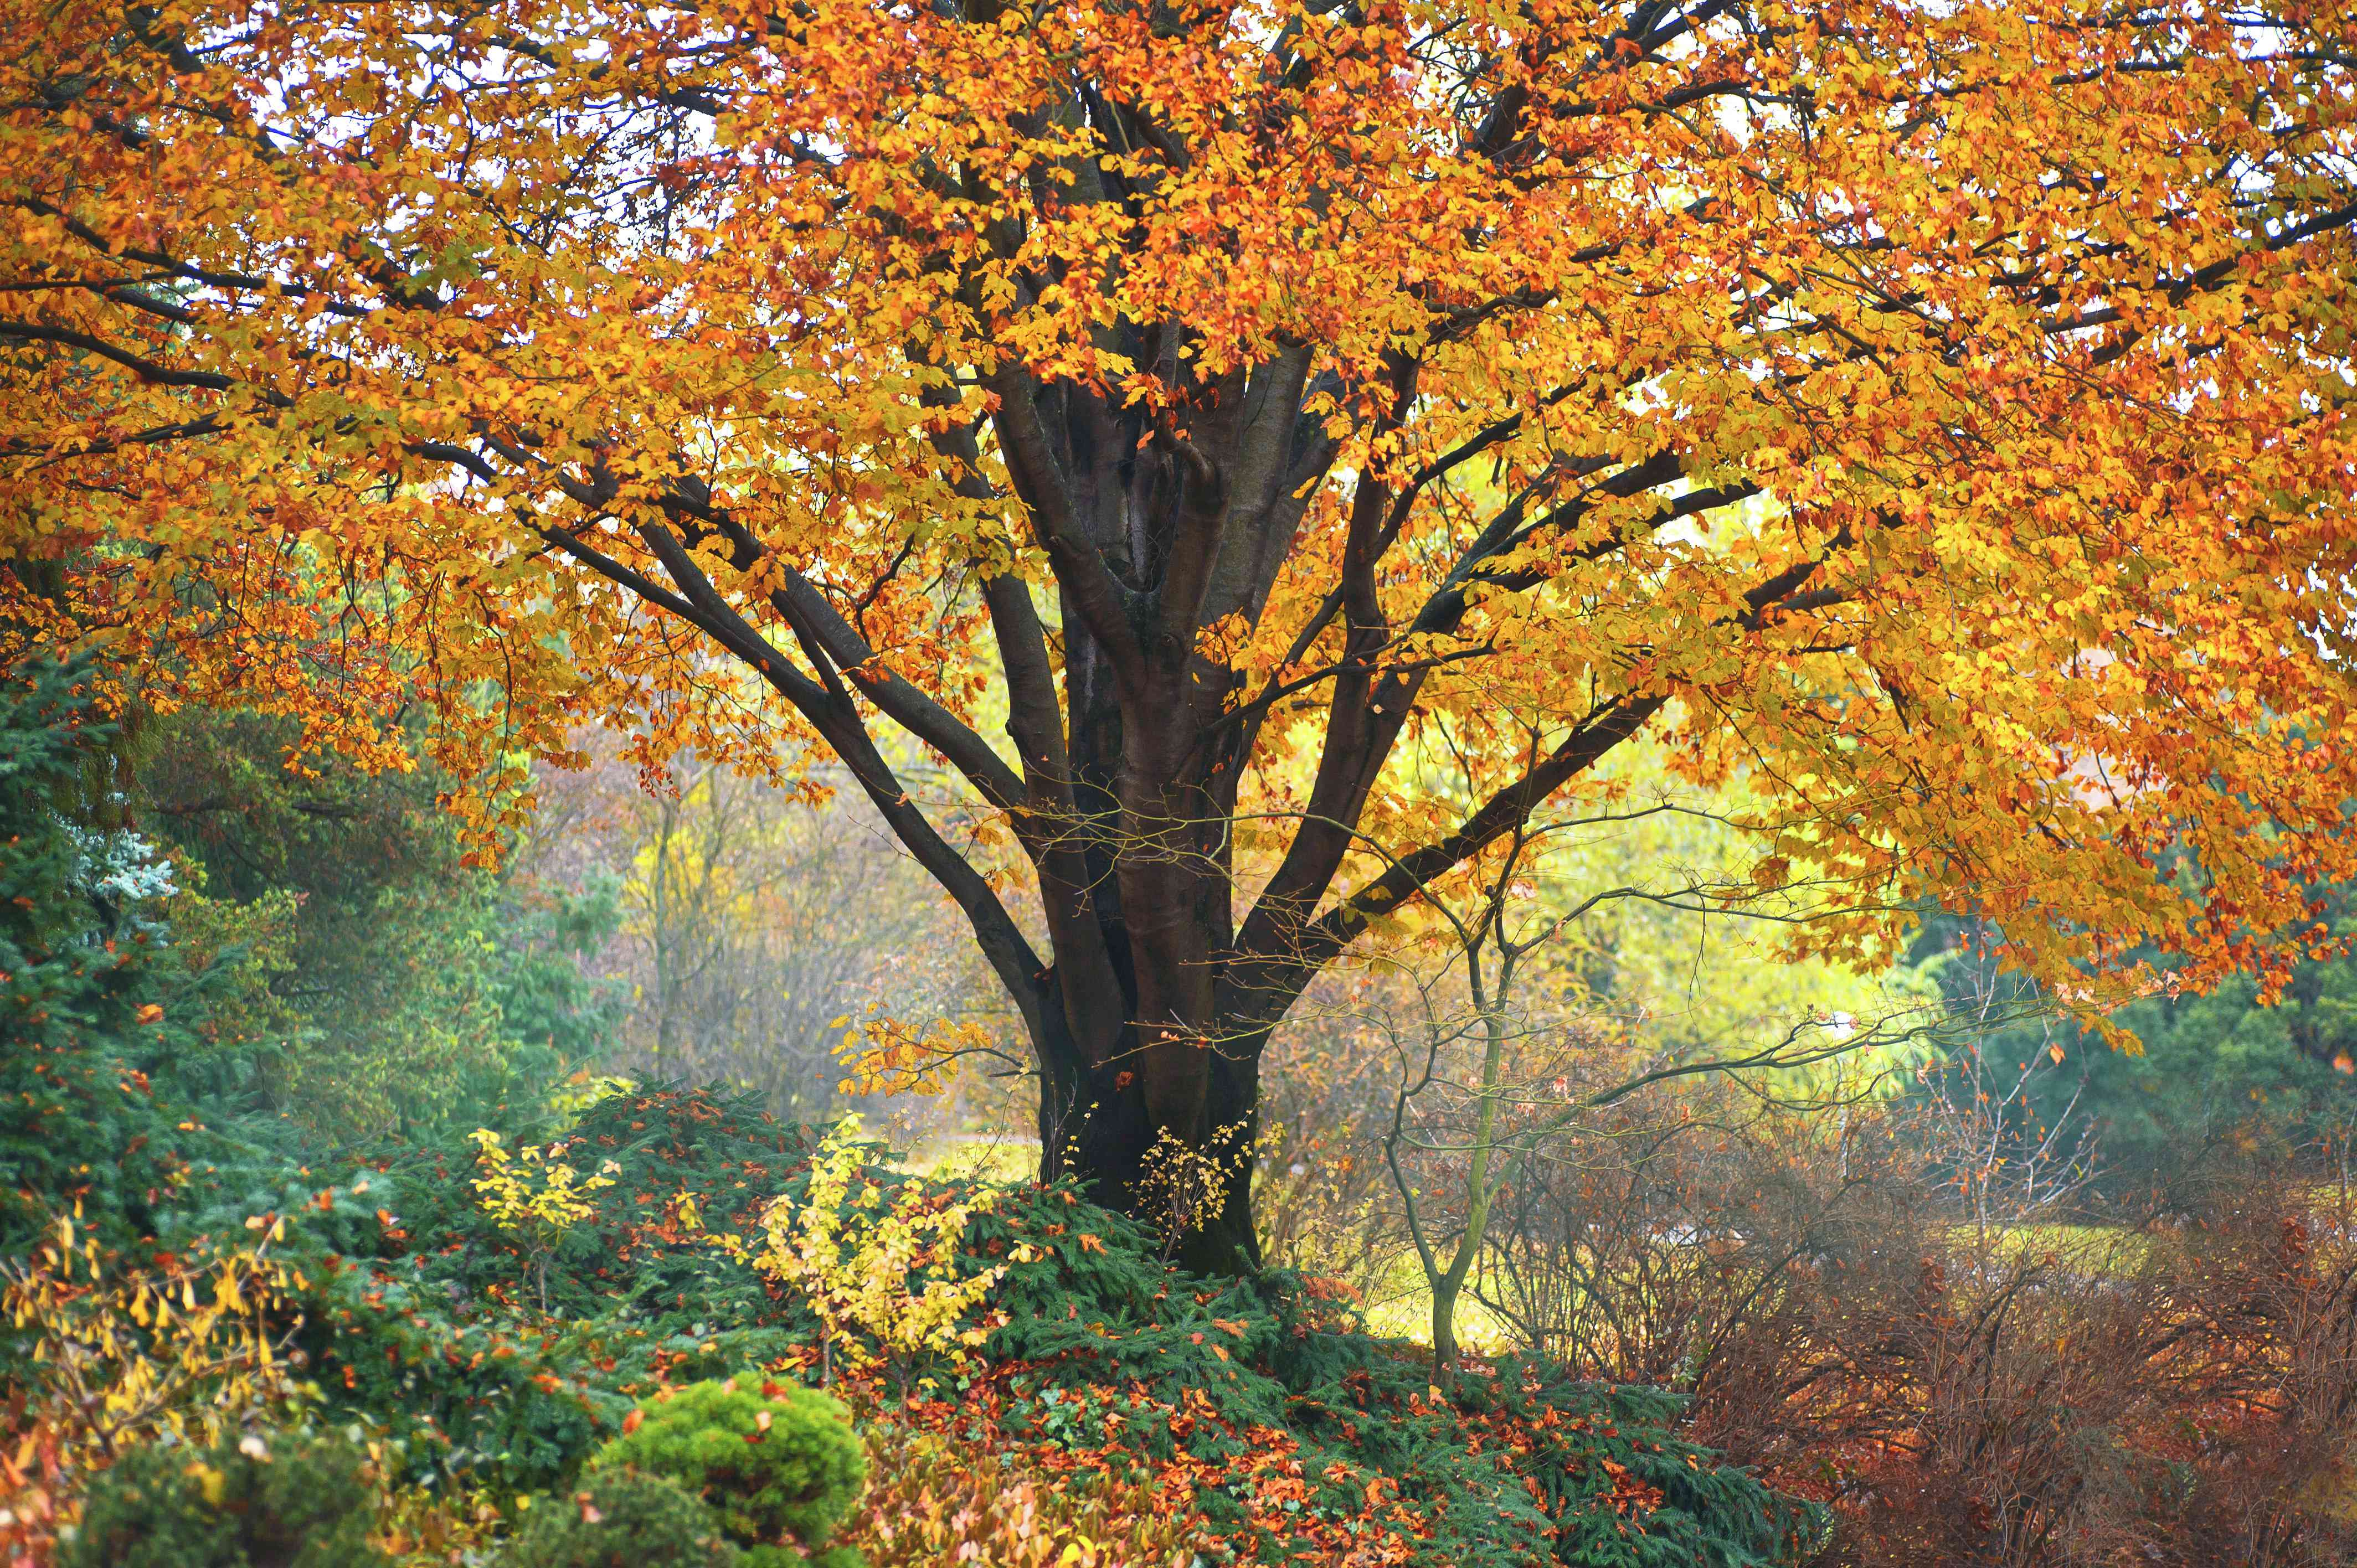 European beech tree with bright orange leaves in middle of colorful woods